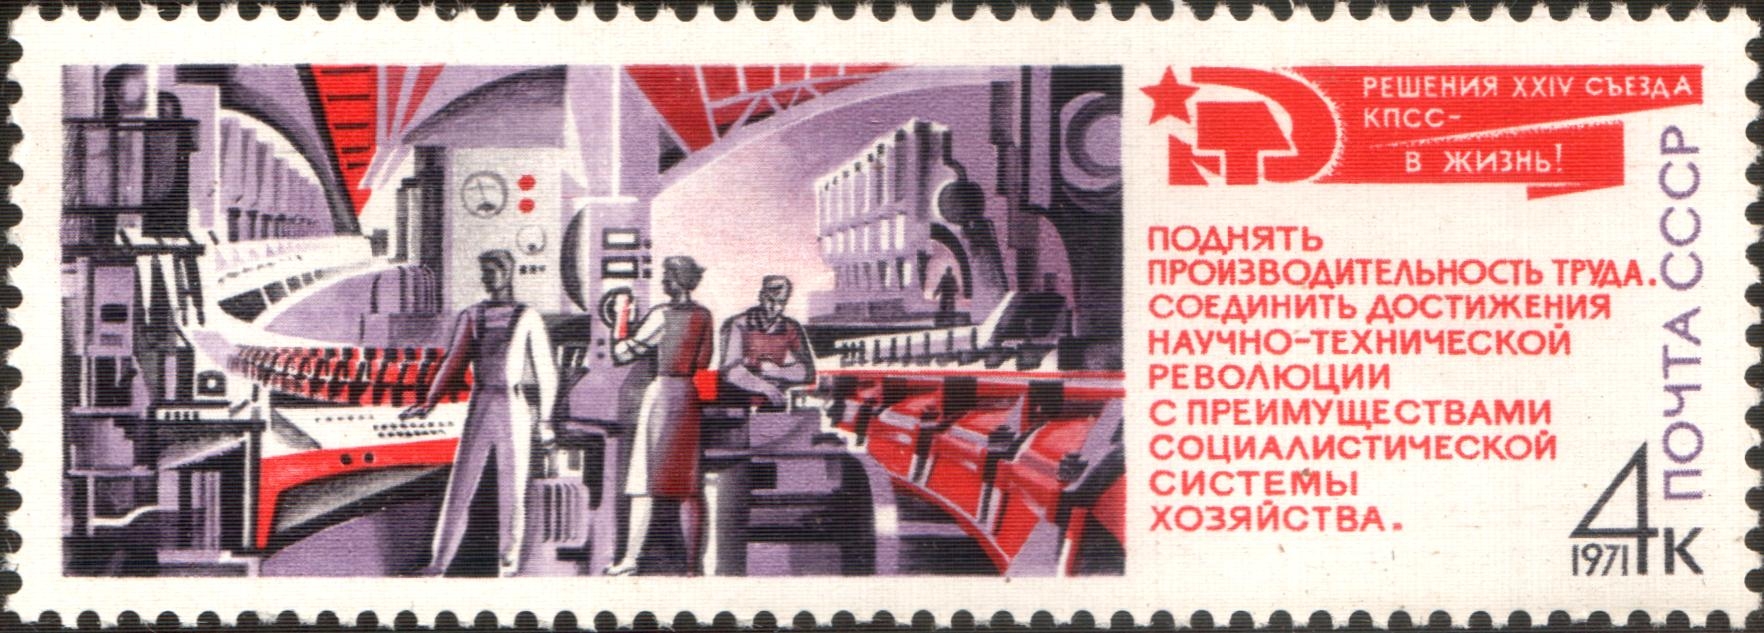 FileThe Soviet Union 1971 CPA 4050 Stamp Mechanical Engineering Plant Increased Productivity